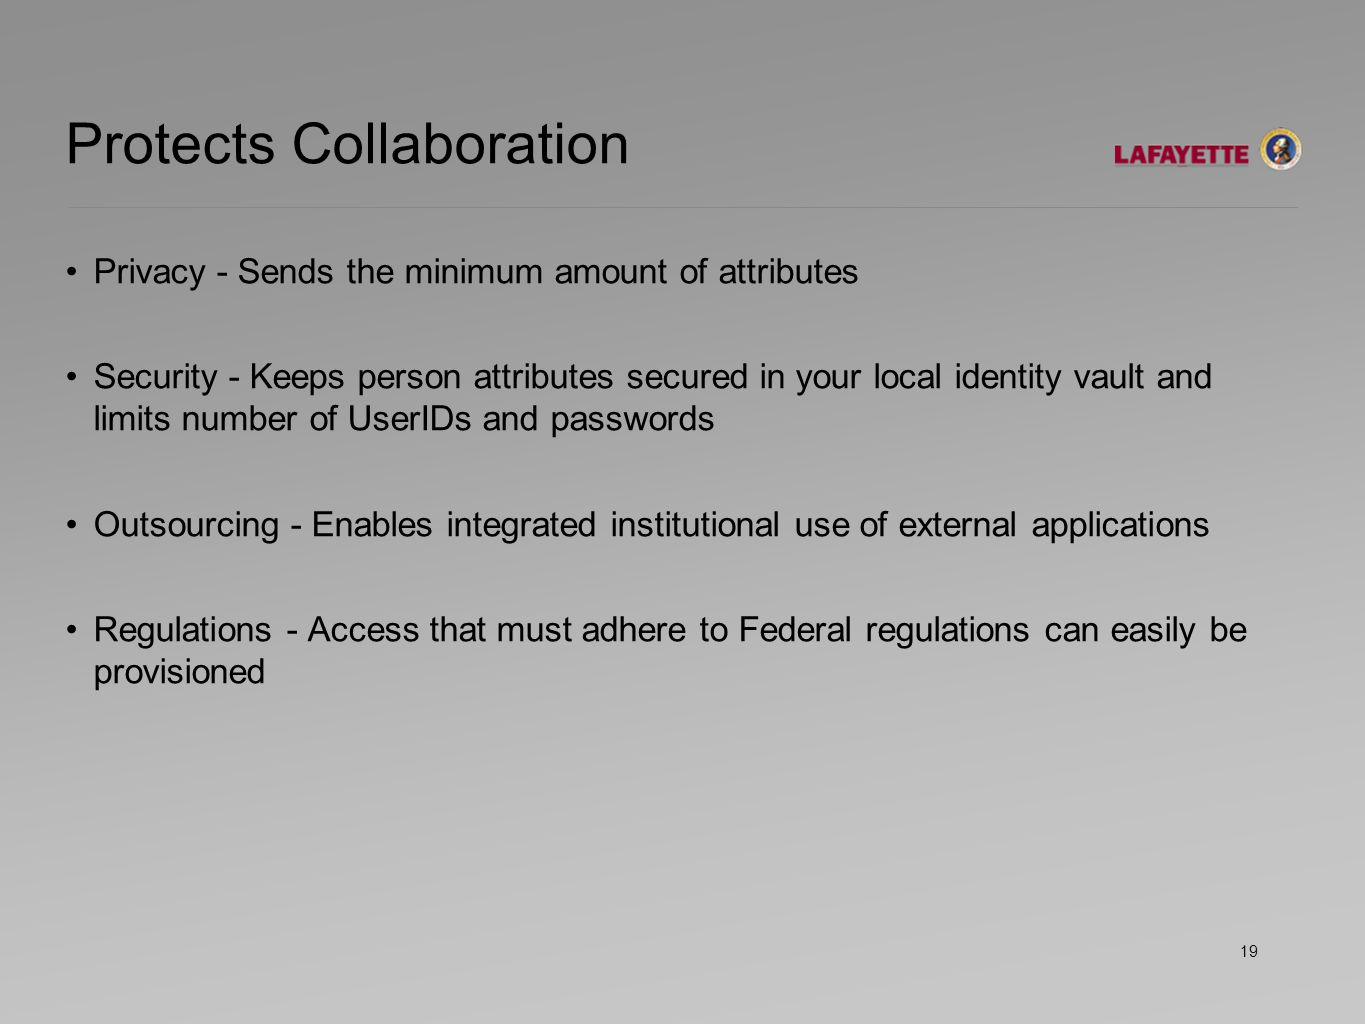 Protects Collaboration Privacy - Sends the minimum amount of attributes Security - Keeps person attributes secured in your local identity vault and limits number of UserIDs and passwords Outsourcing - Enables integrated institutional use of external applications Regulations - Access that must adhere to Federal regulations can easily be provisioned 19